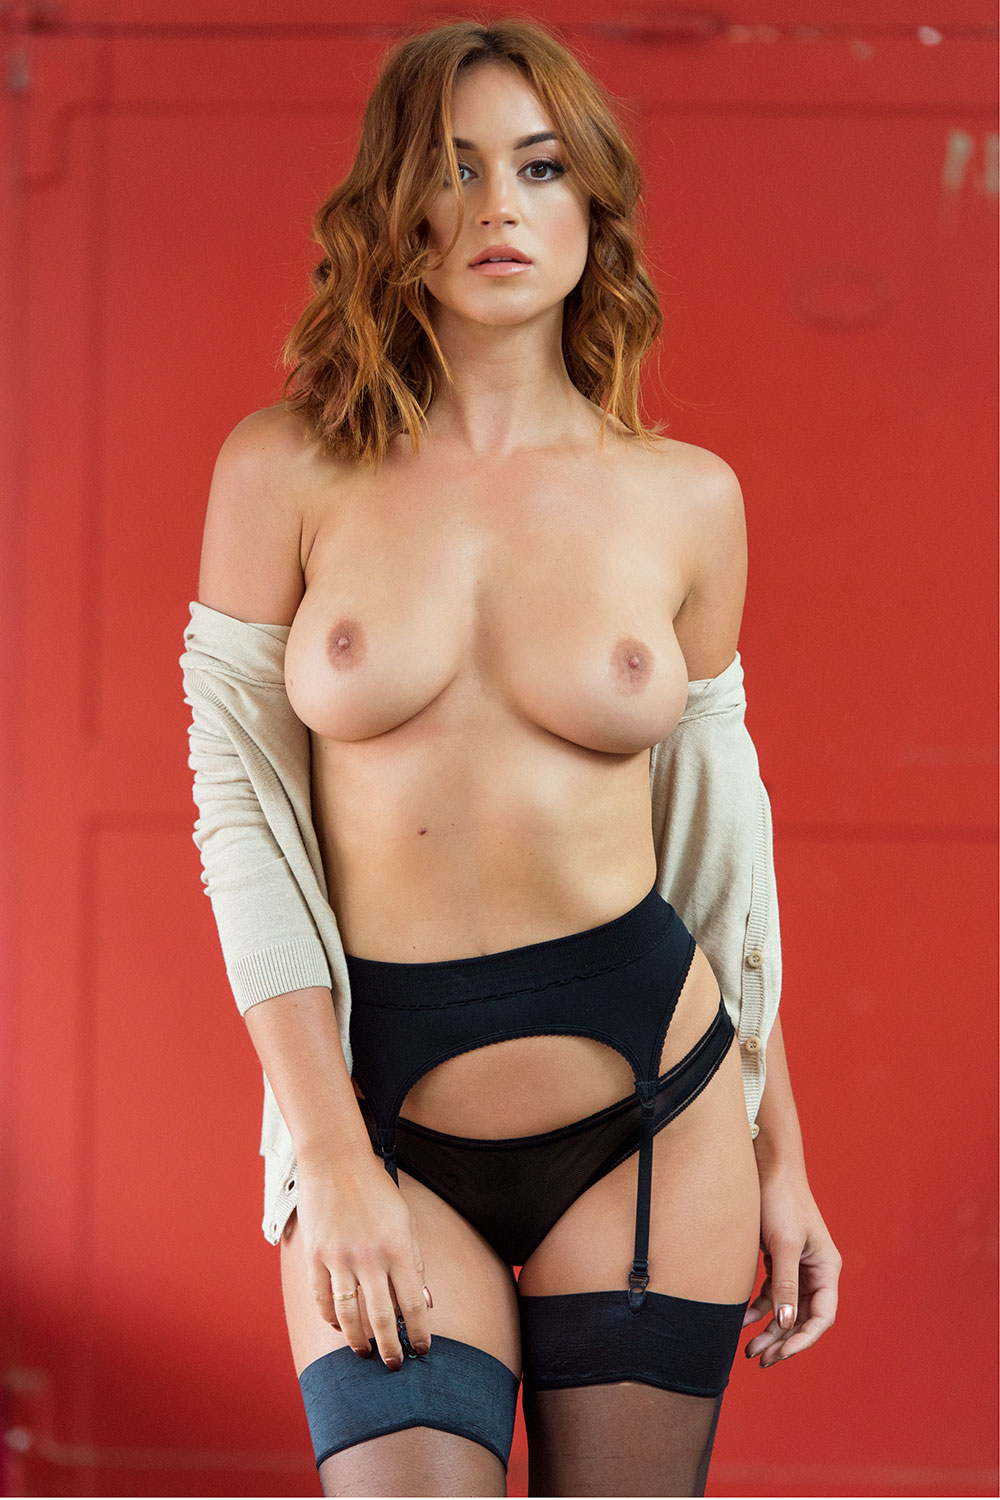 Rosie-Jones-Sexy-Topless-3 (1)